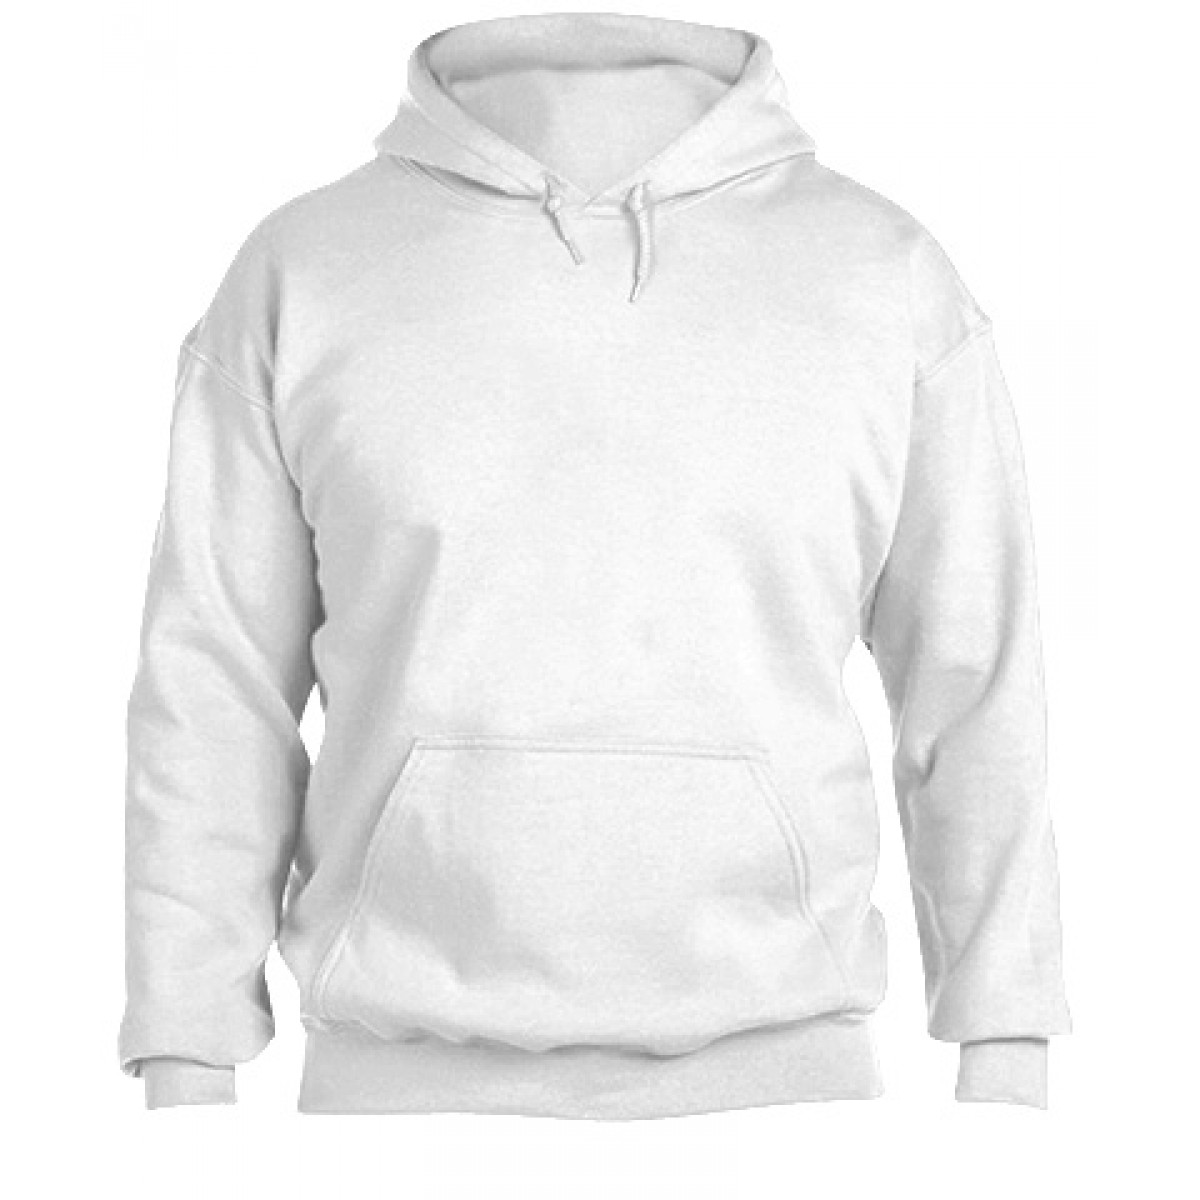 Hooded Sweatshirt 50/50 Heavy Blend-White-3XL